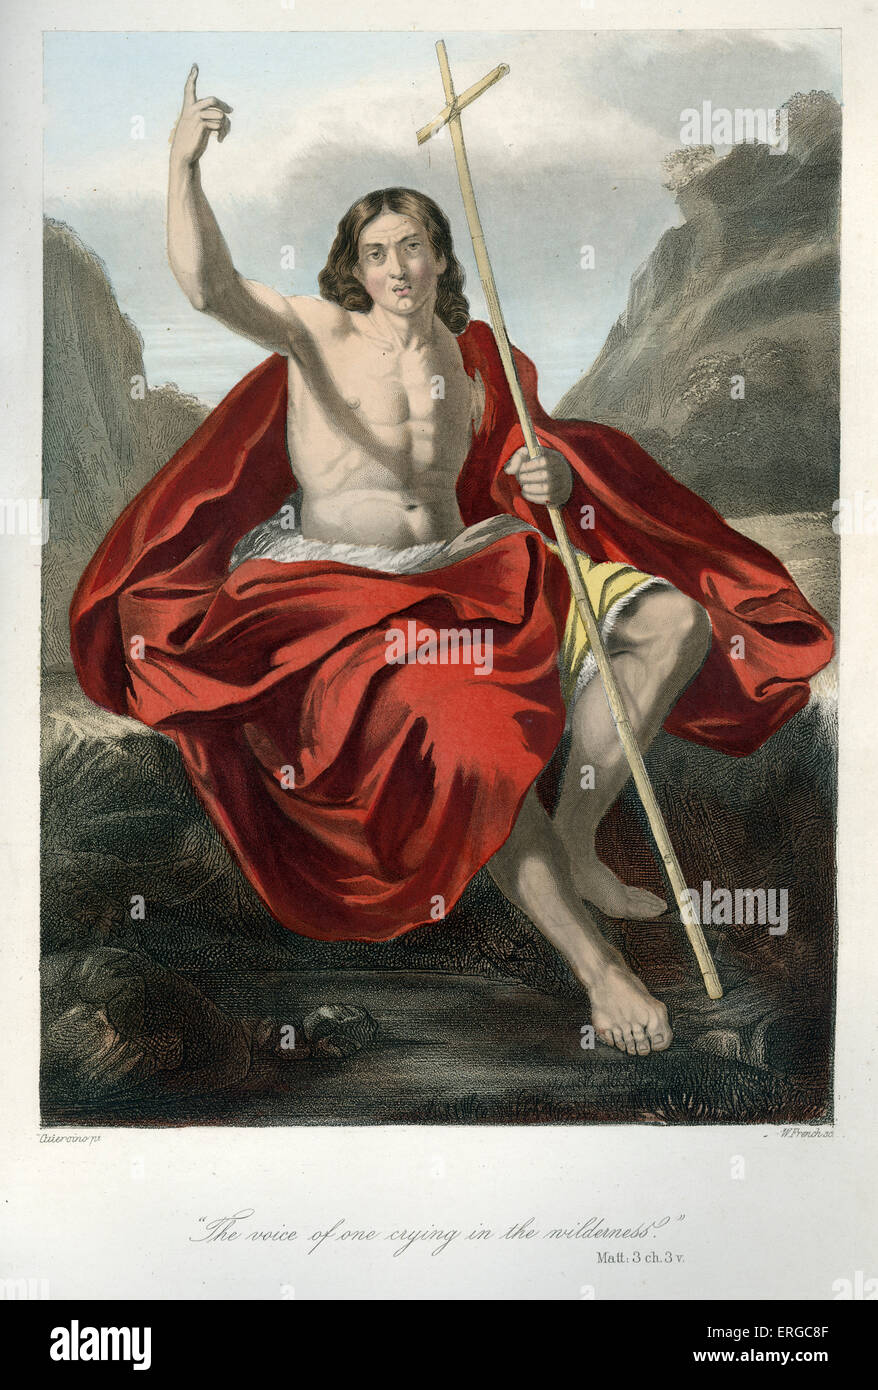 John the Baptist preaching in the wilderness of Judaea. Caption reads: ' The voice of one crying in the wilderness.' - Stock Image